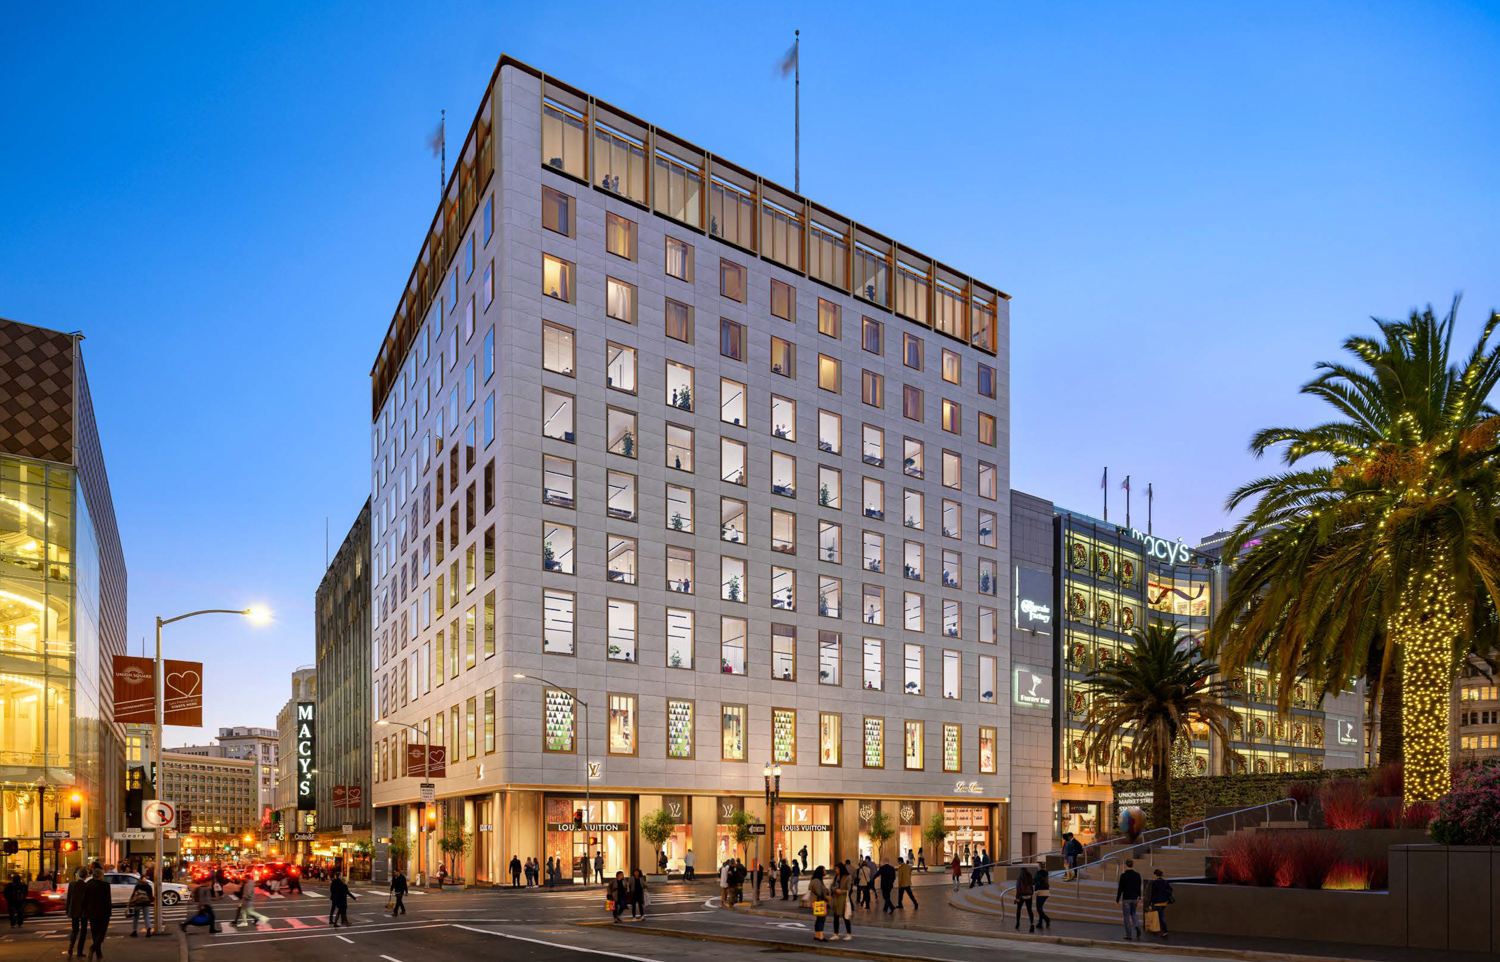 233 Geary Street at dusk, rendering via Handel Architects